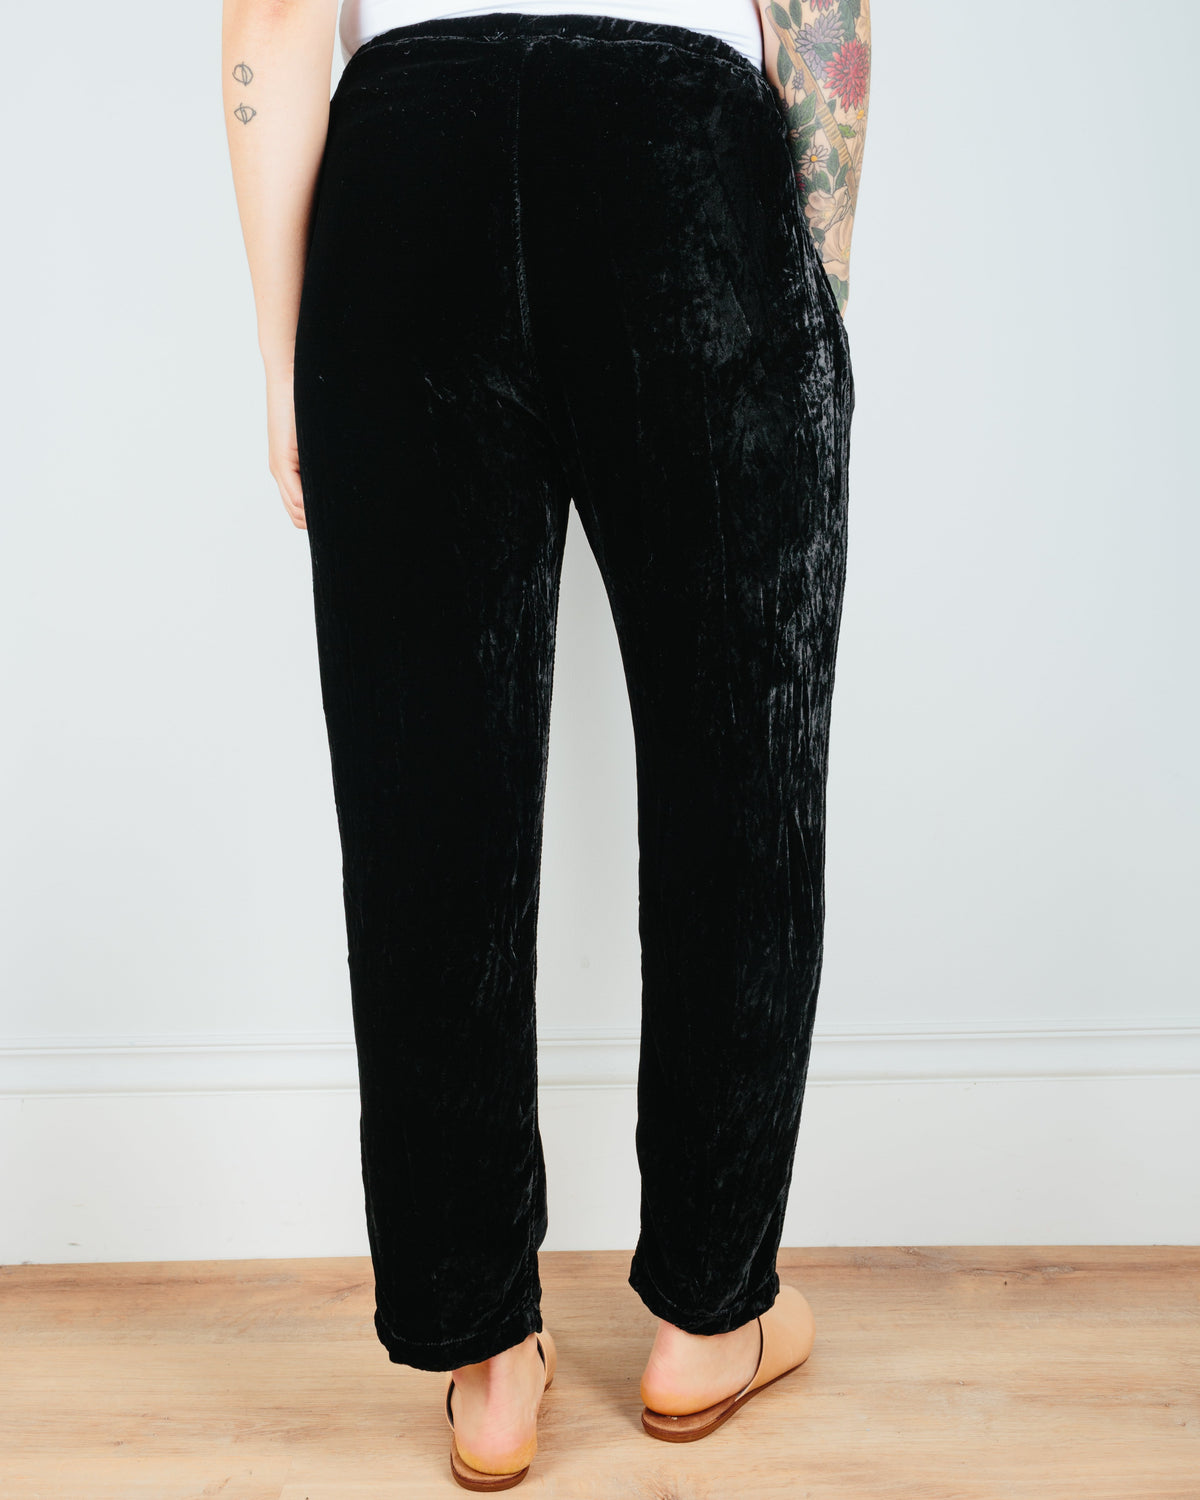 CP Shades Clothing Amal Tapered Pant in Black Velvet